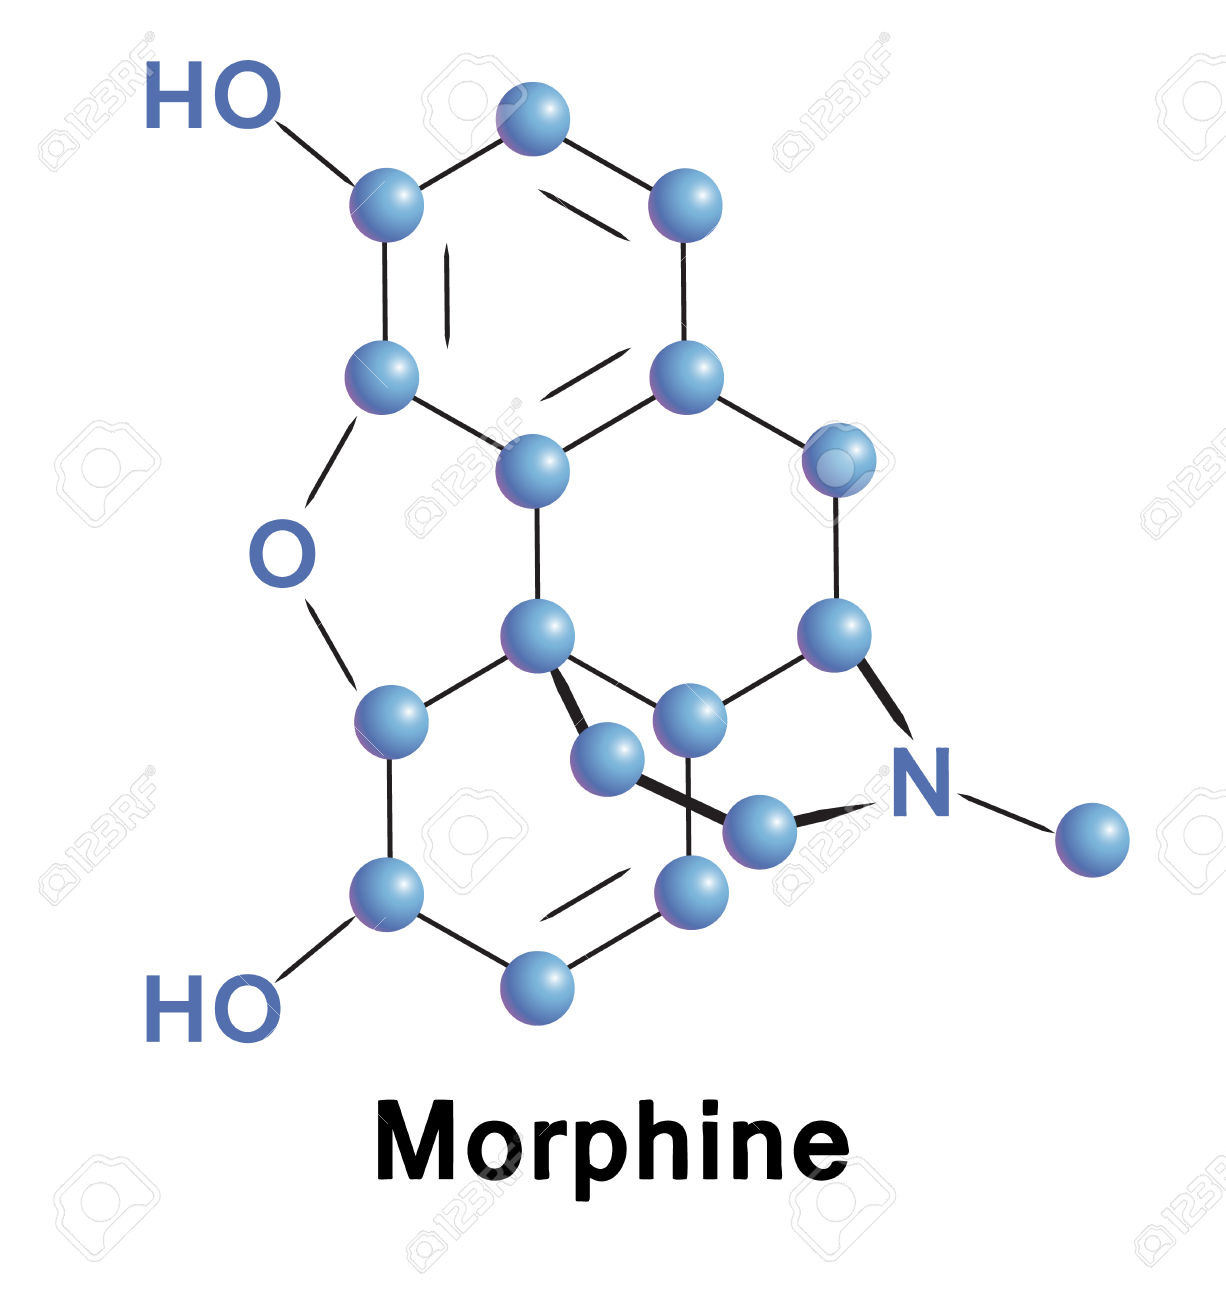 Morphine Chemical Compound Molecular Structure. Vector.